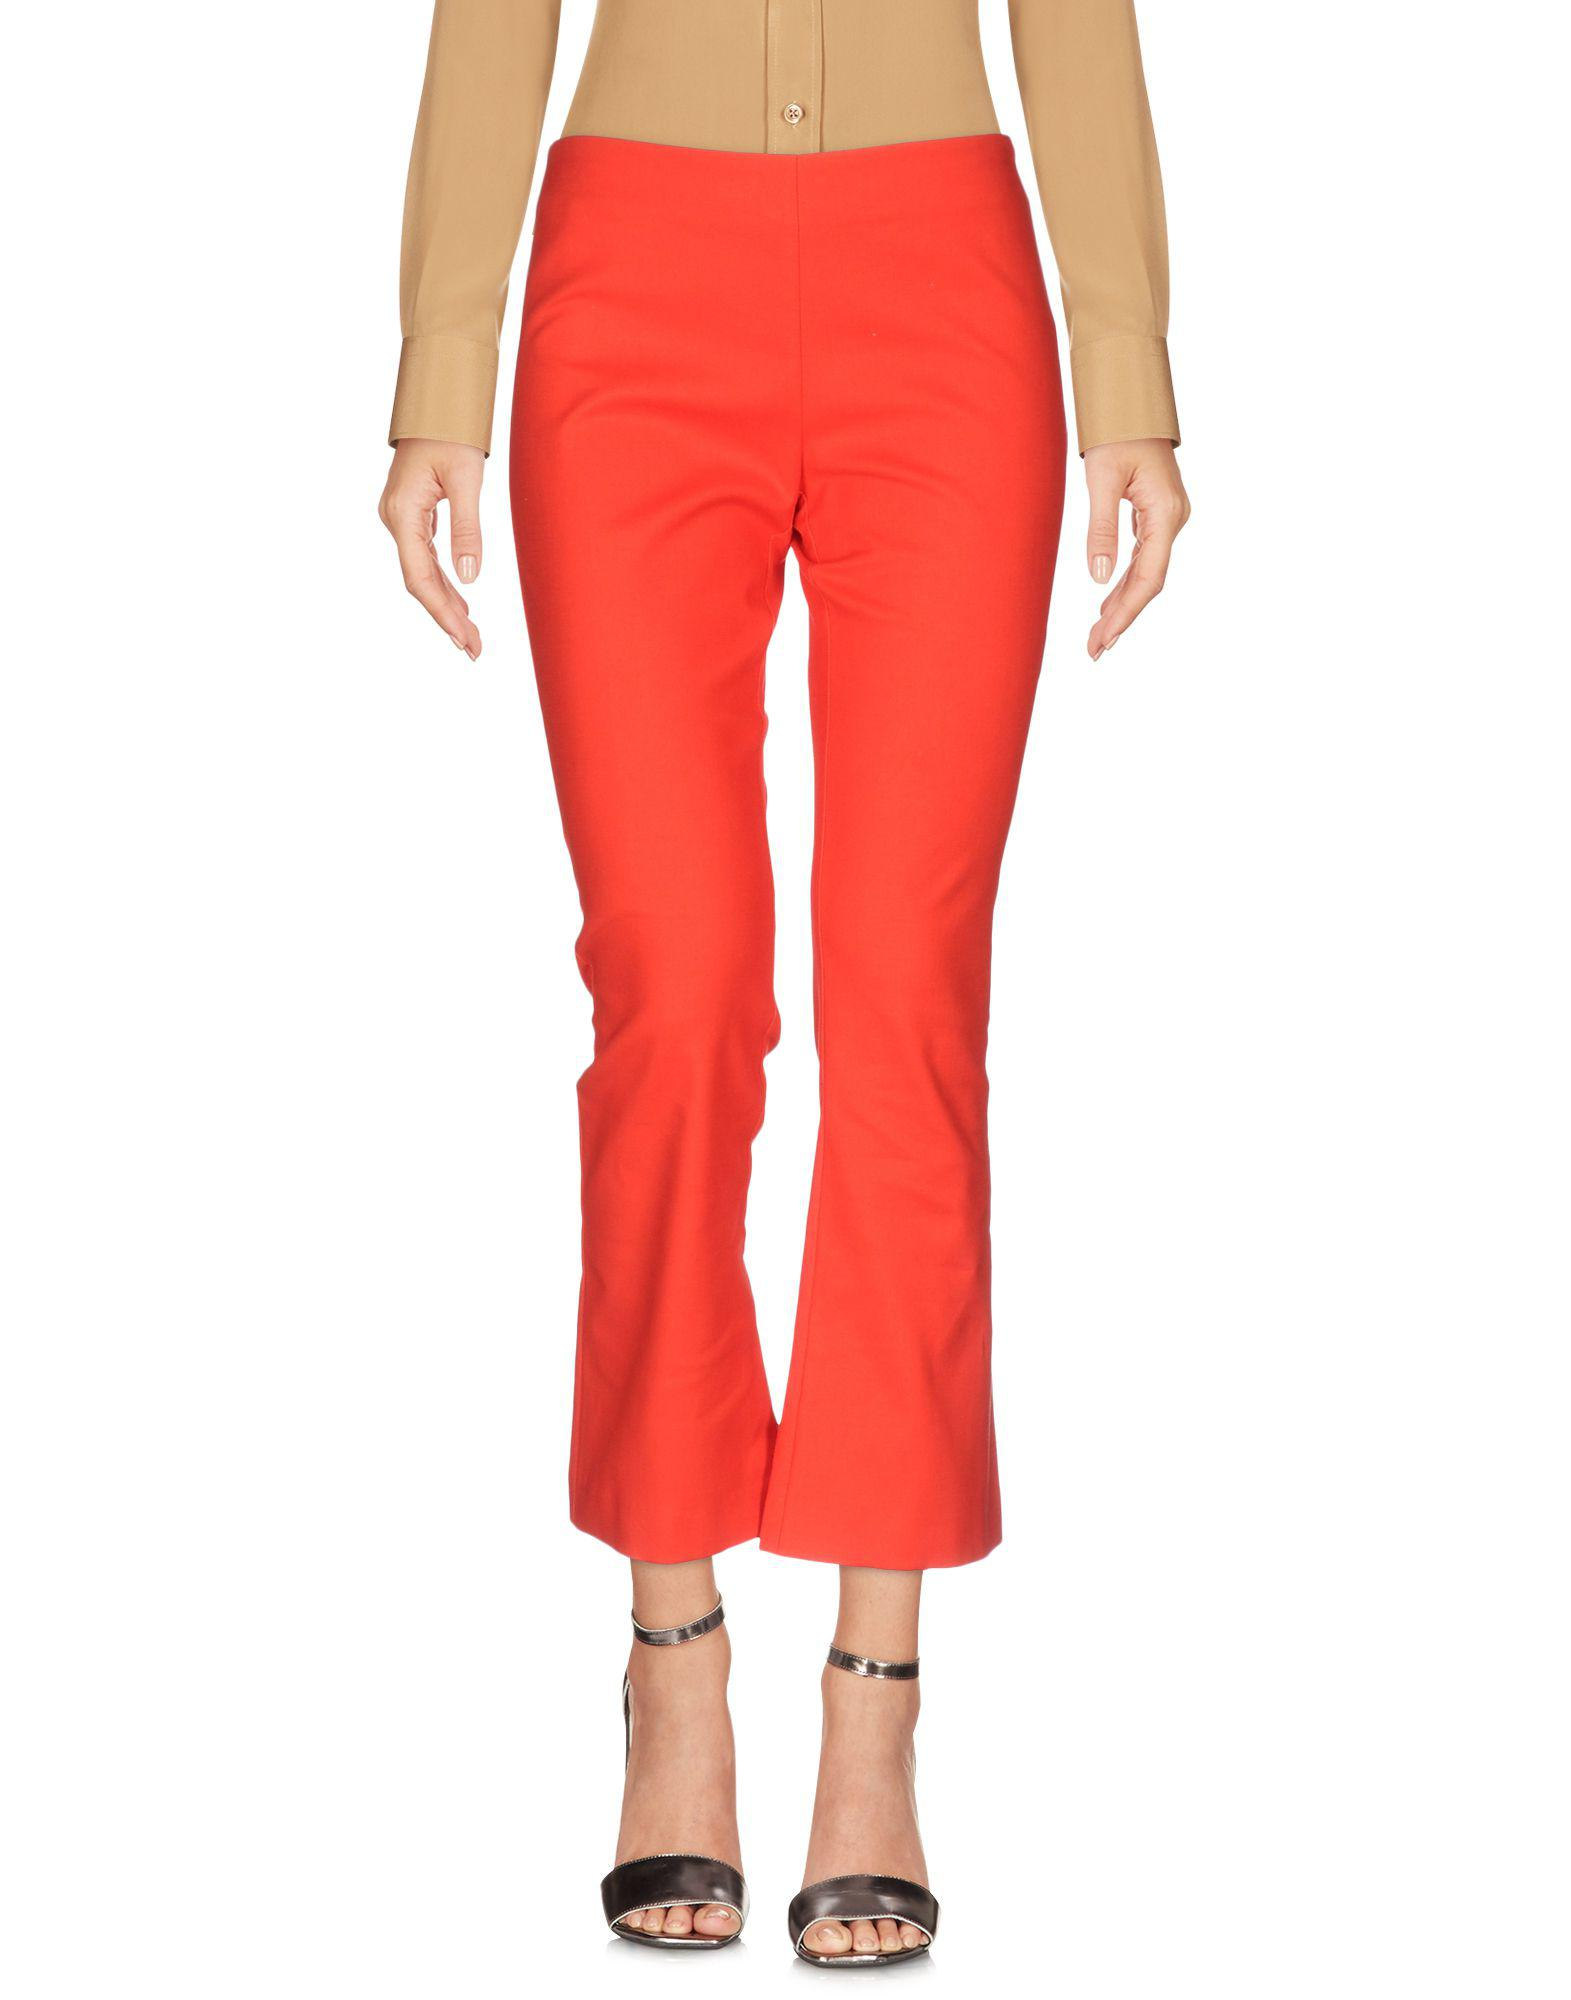 TROUSERS - Casual trousers Vivetta Cheap Sale Get Authentic rb46DwD